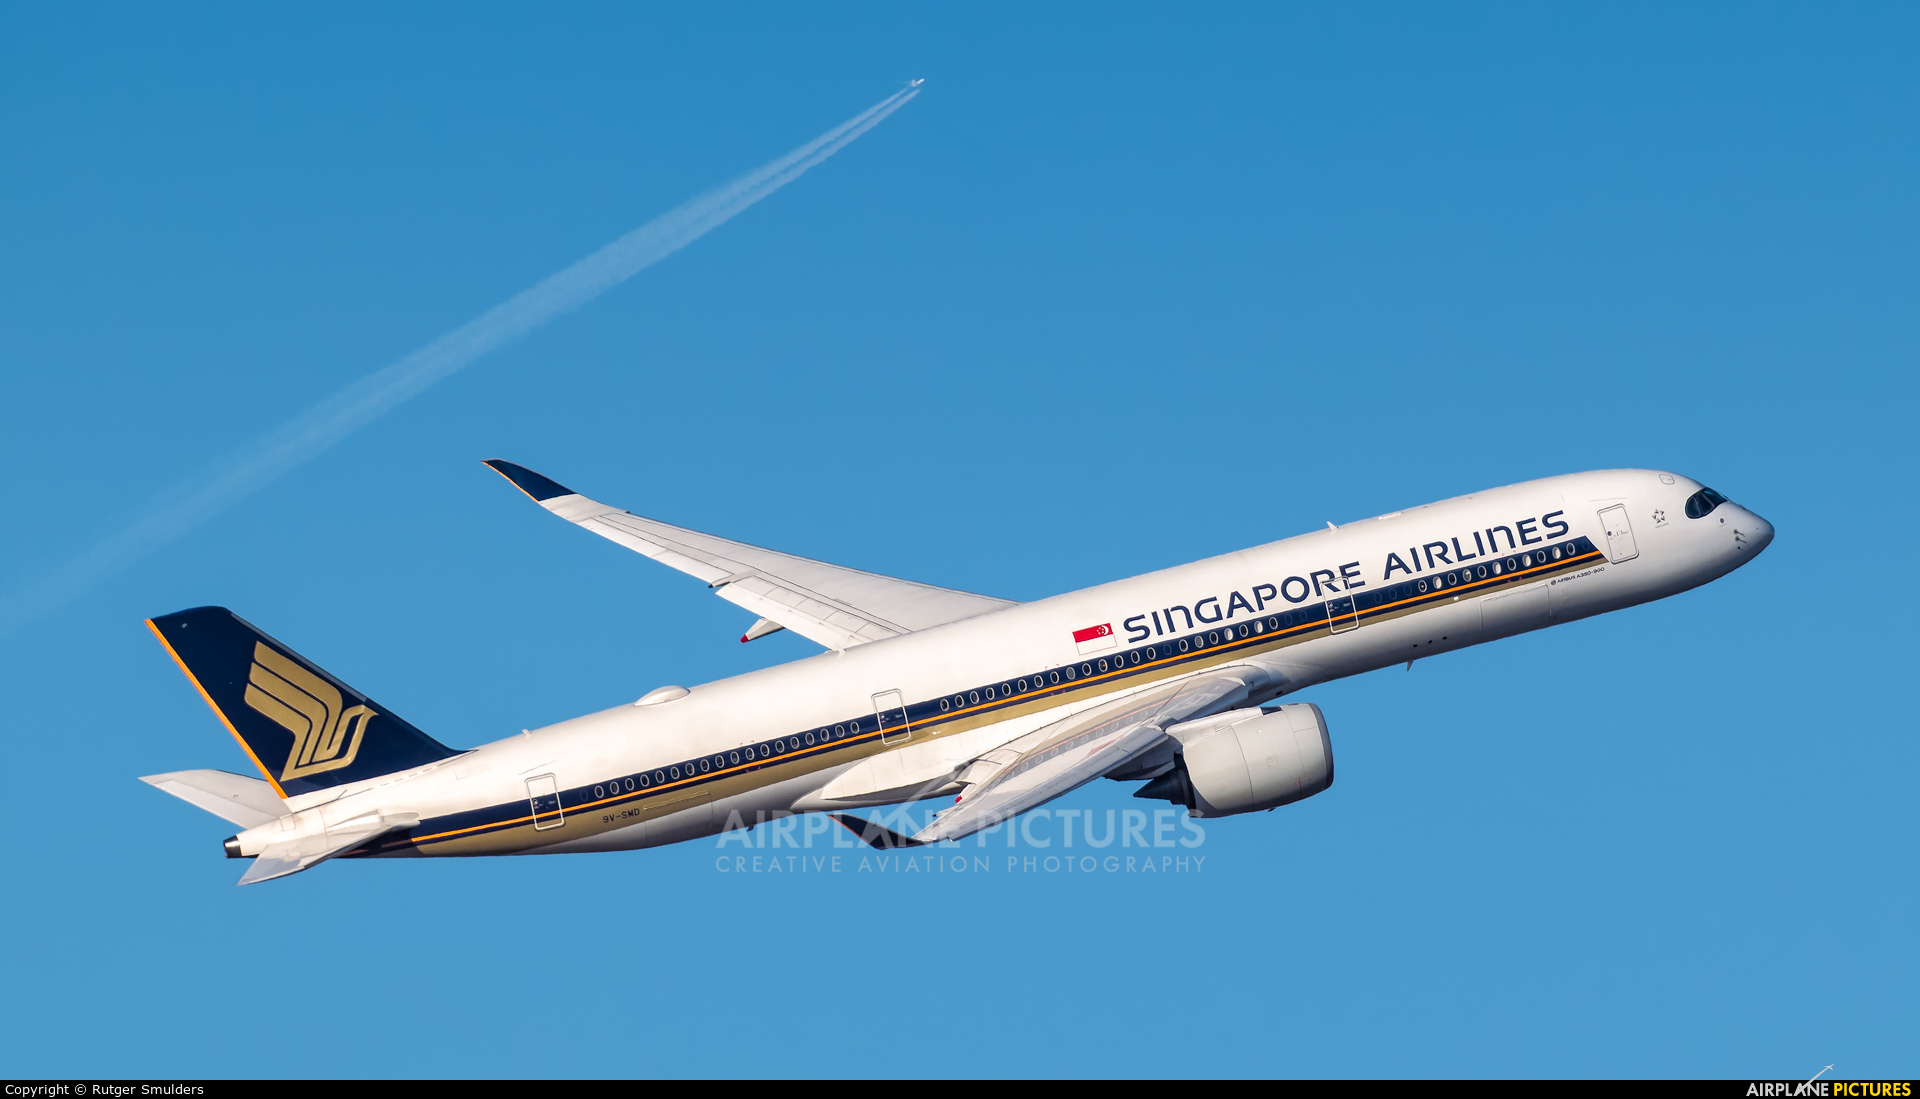 Singapore Airlines 9V-SMD aircraft at Amsterdam - Schiphol